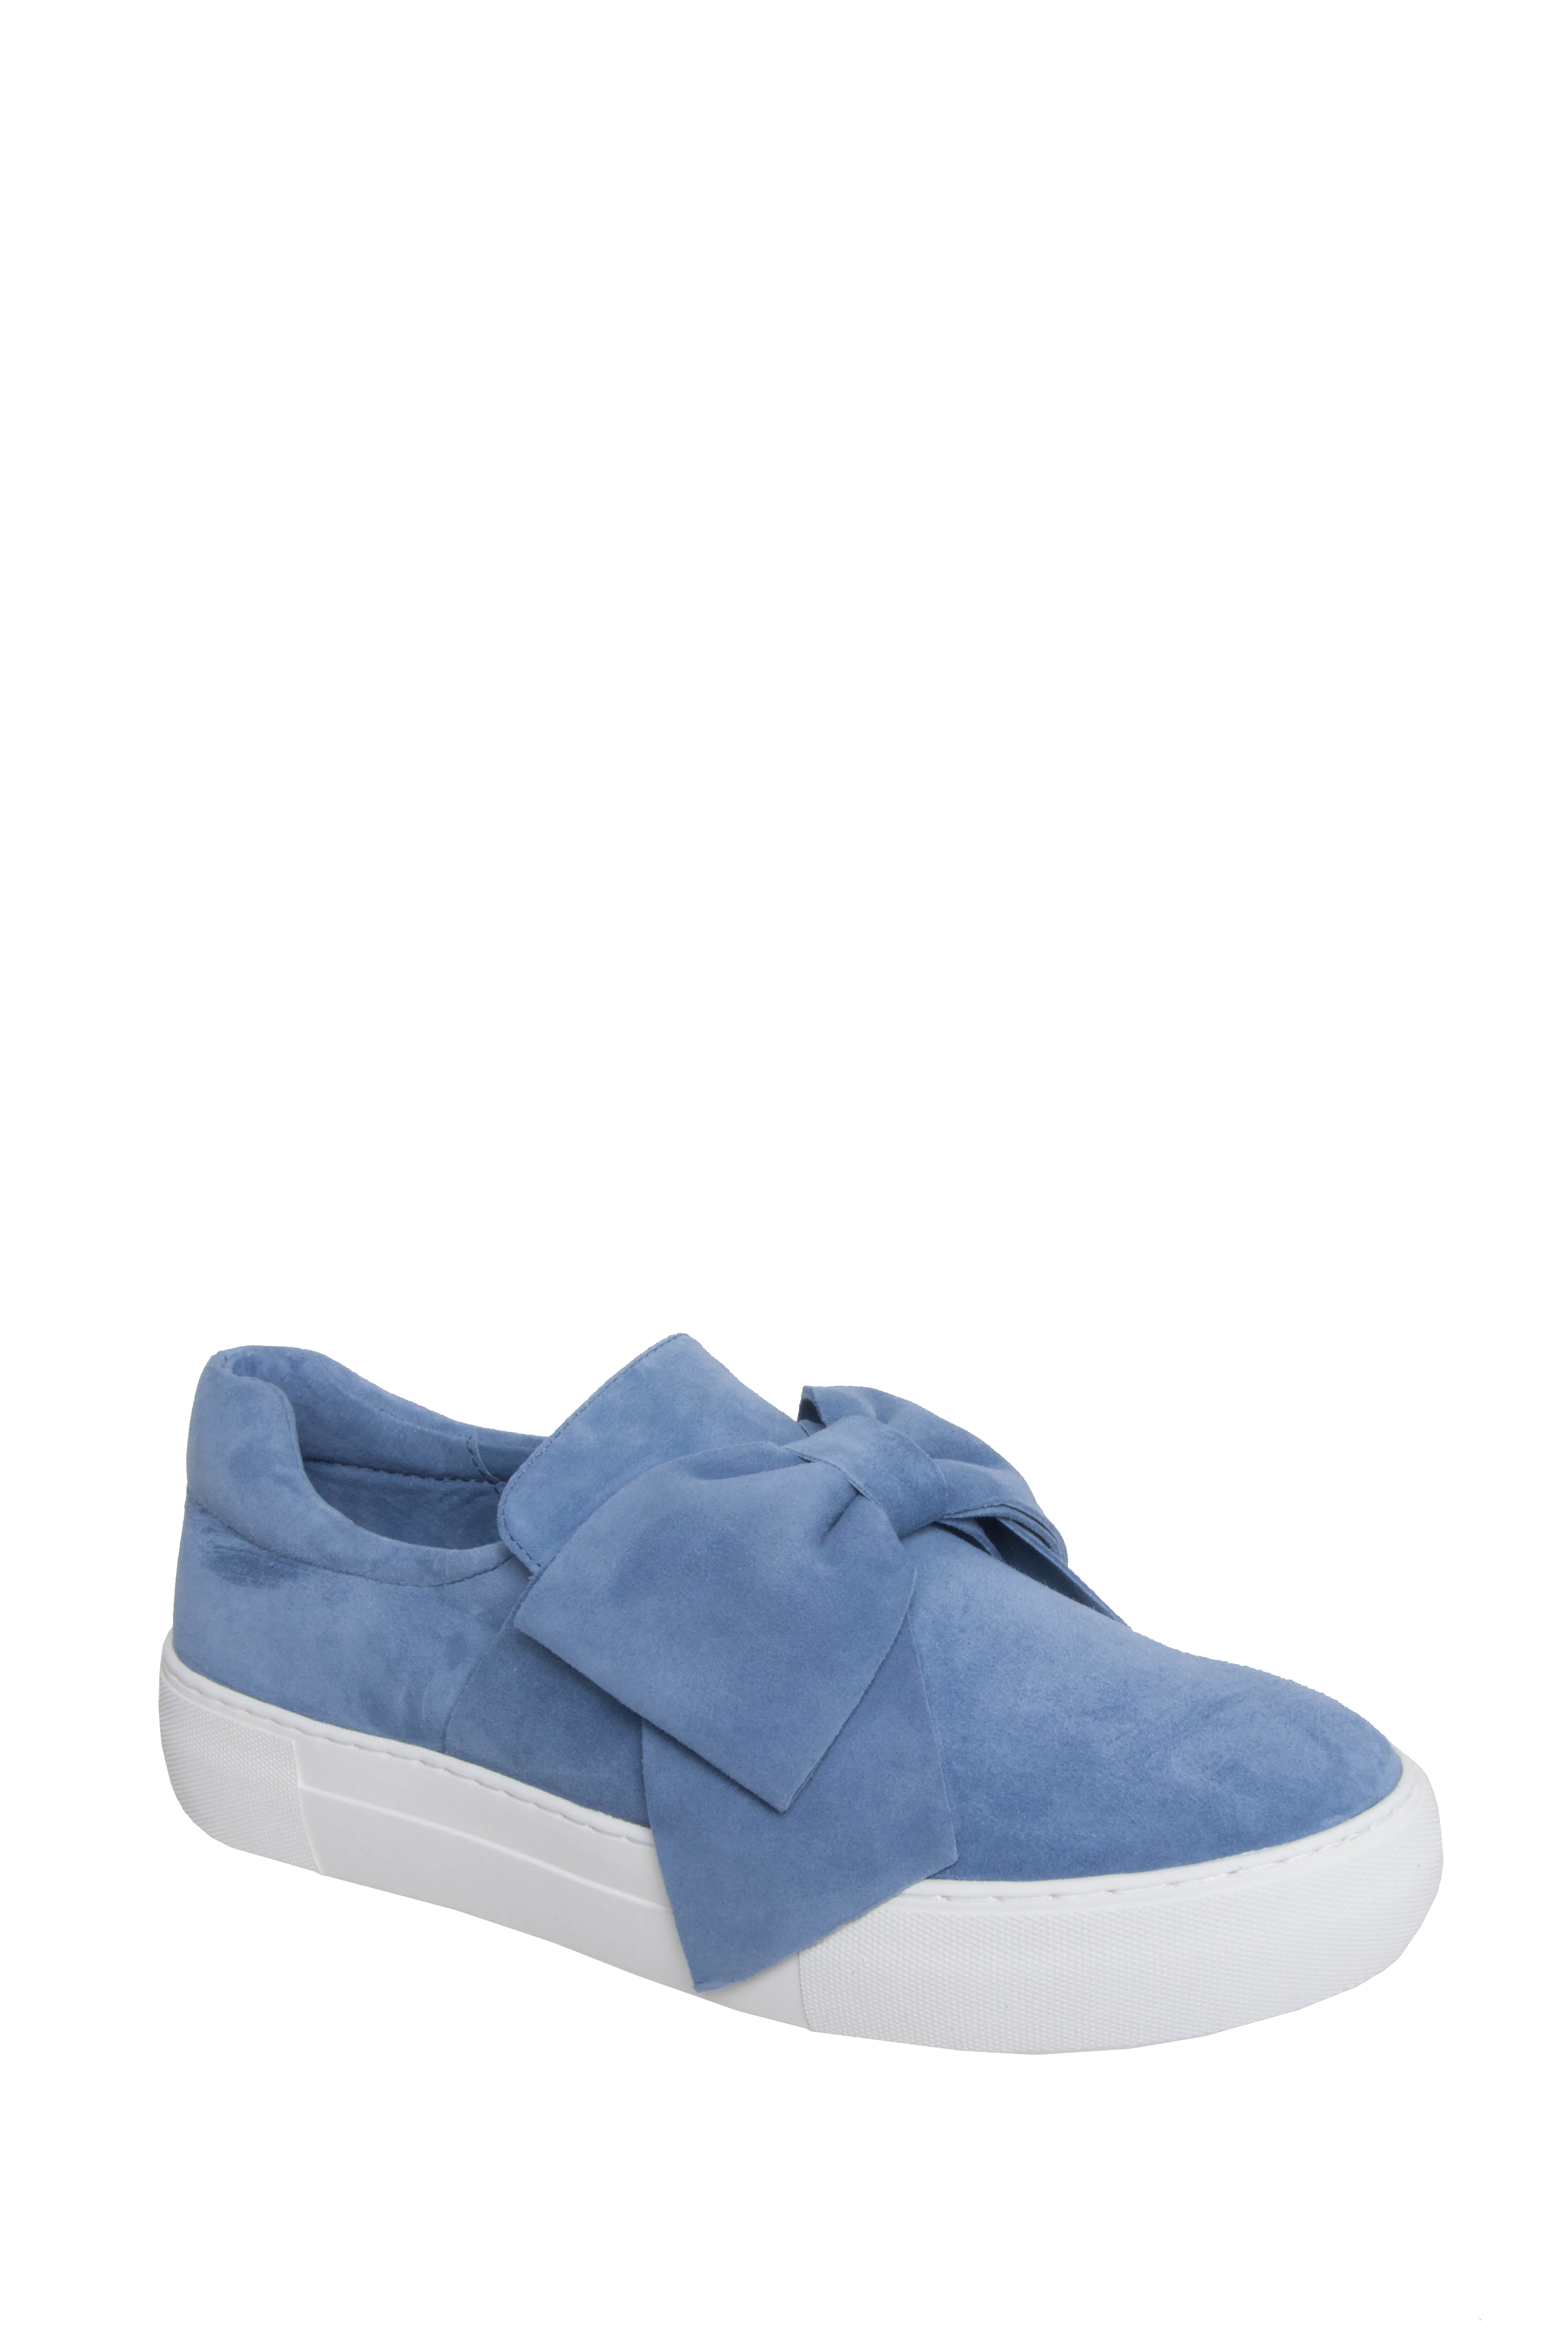 J Slides Beauty Platform Sneakers - Sky Blue